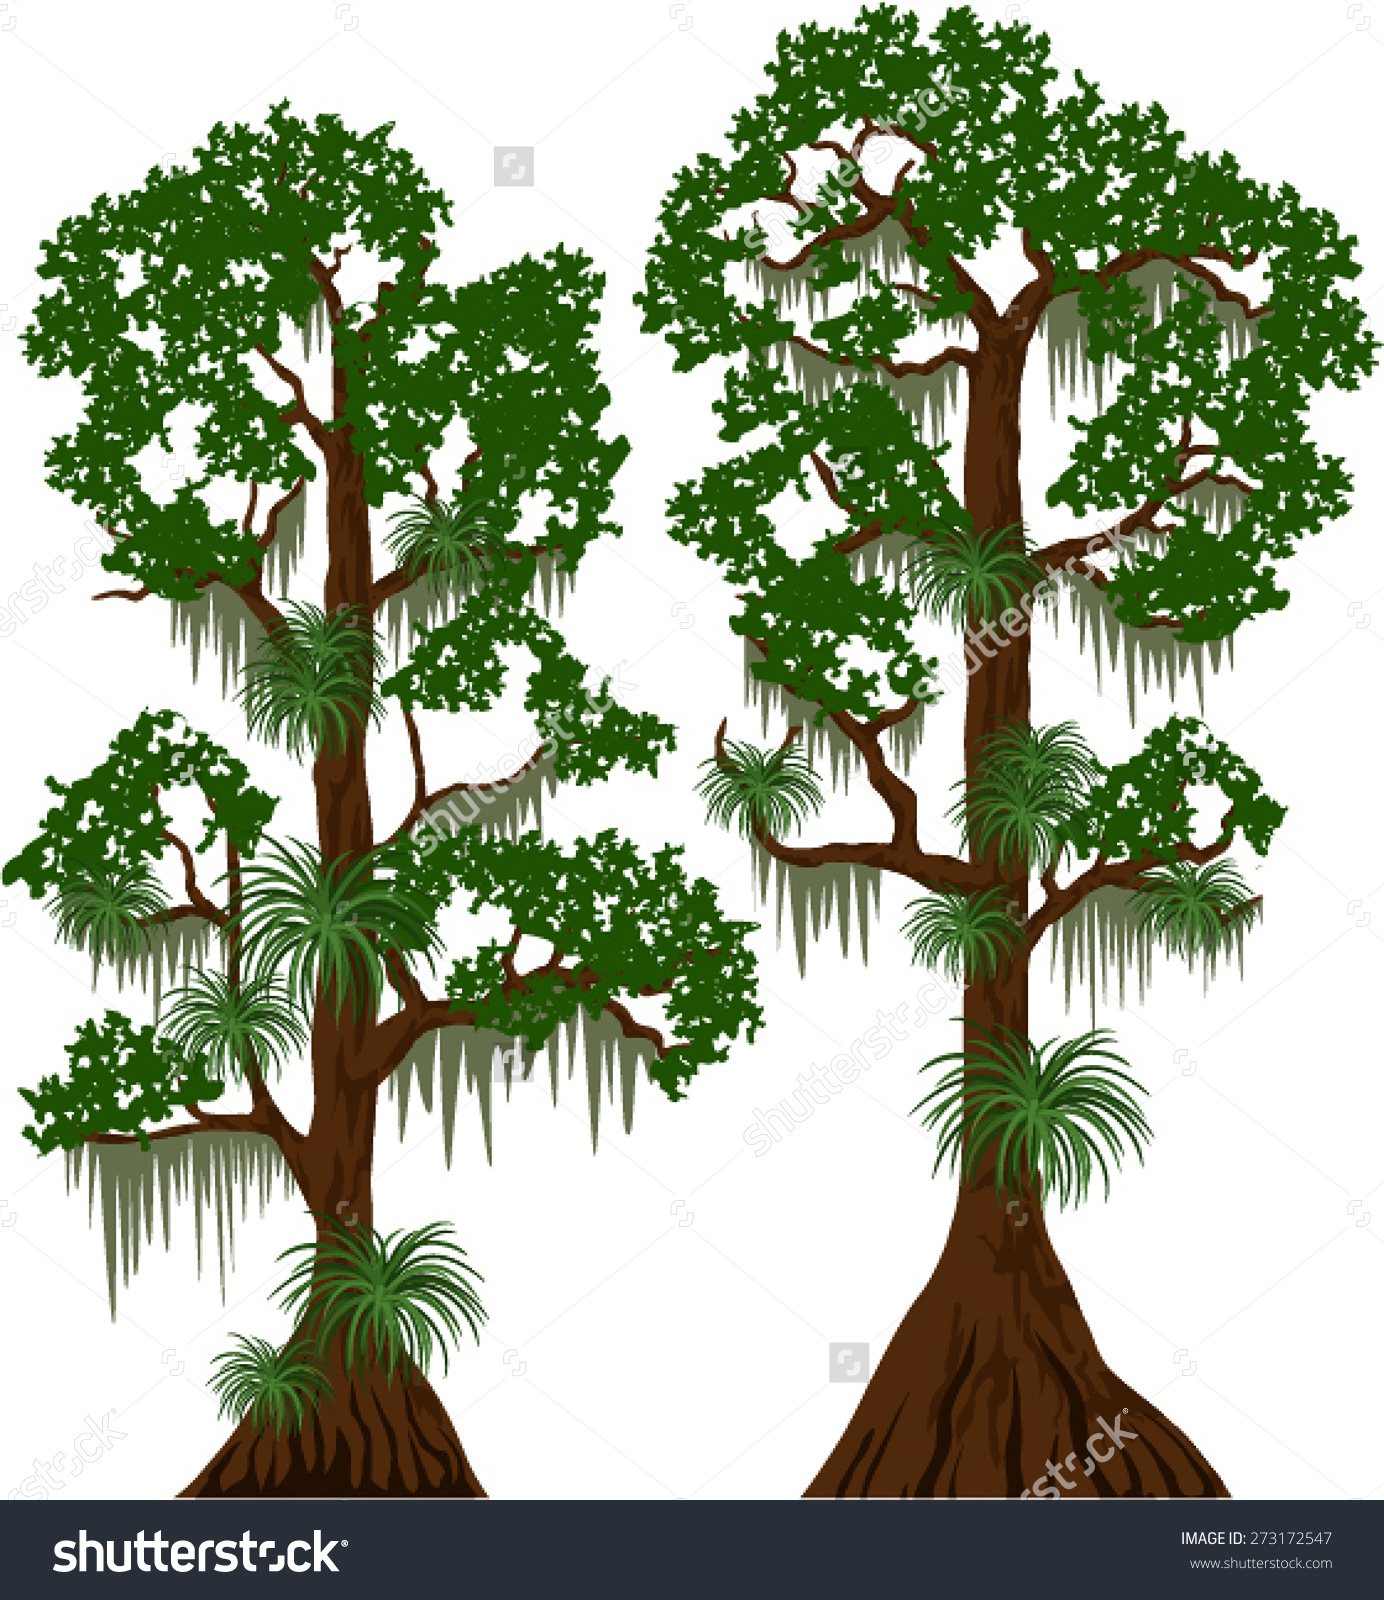 Tree moss clipart.